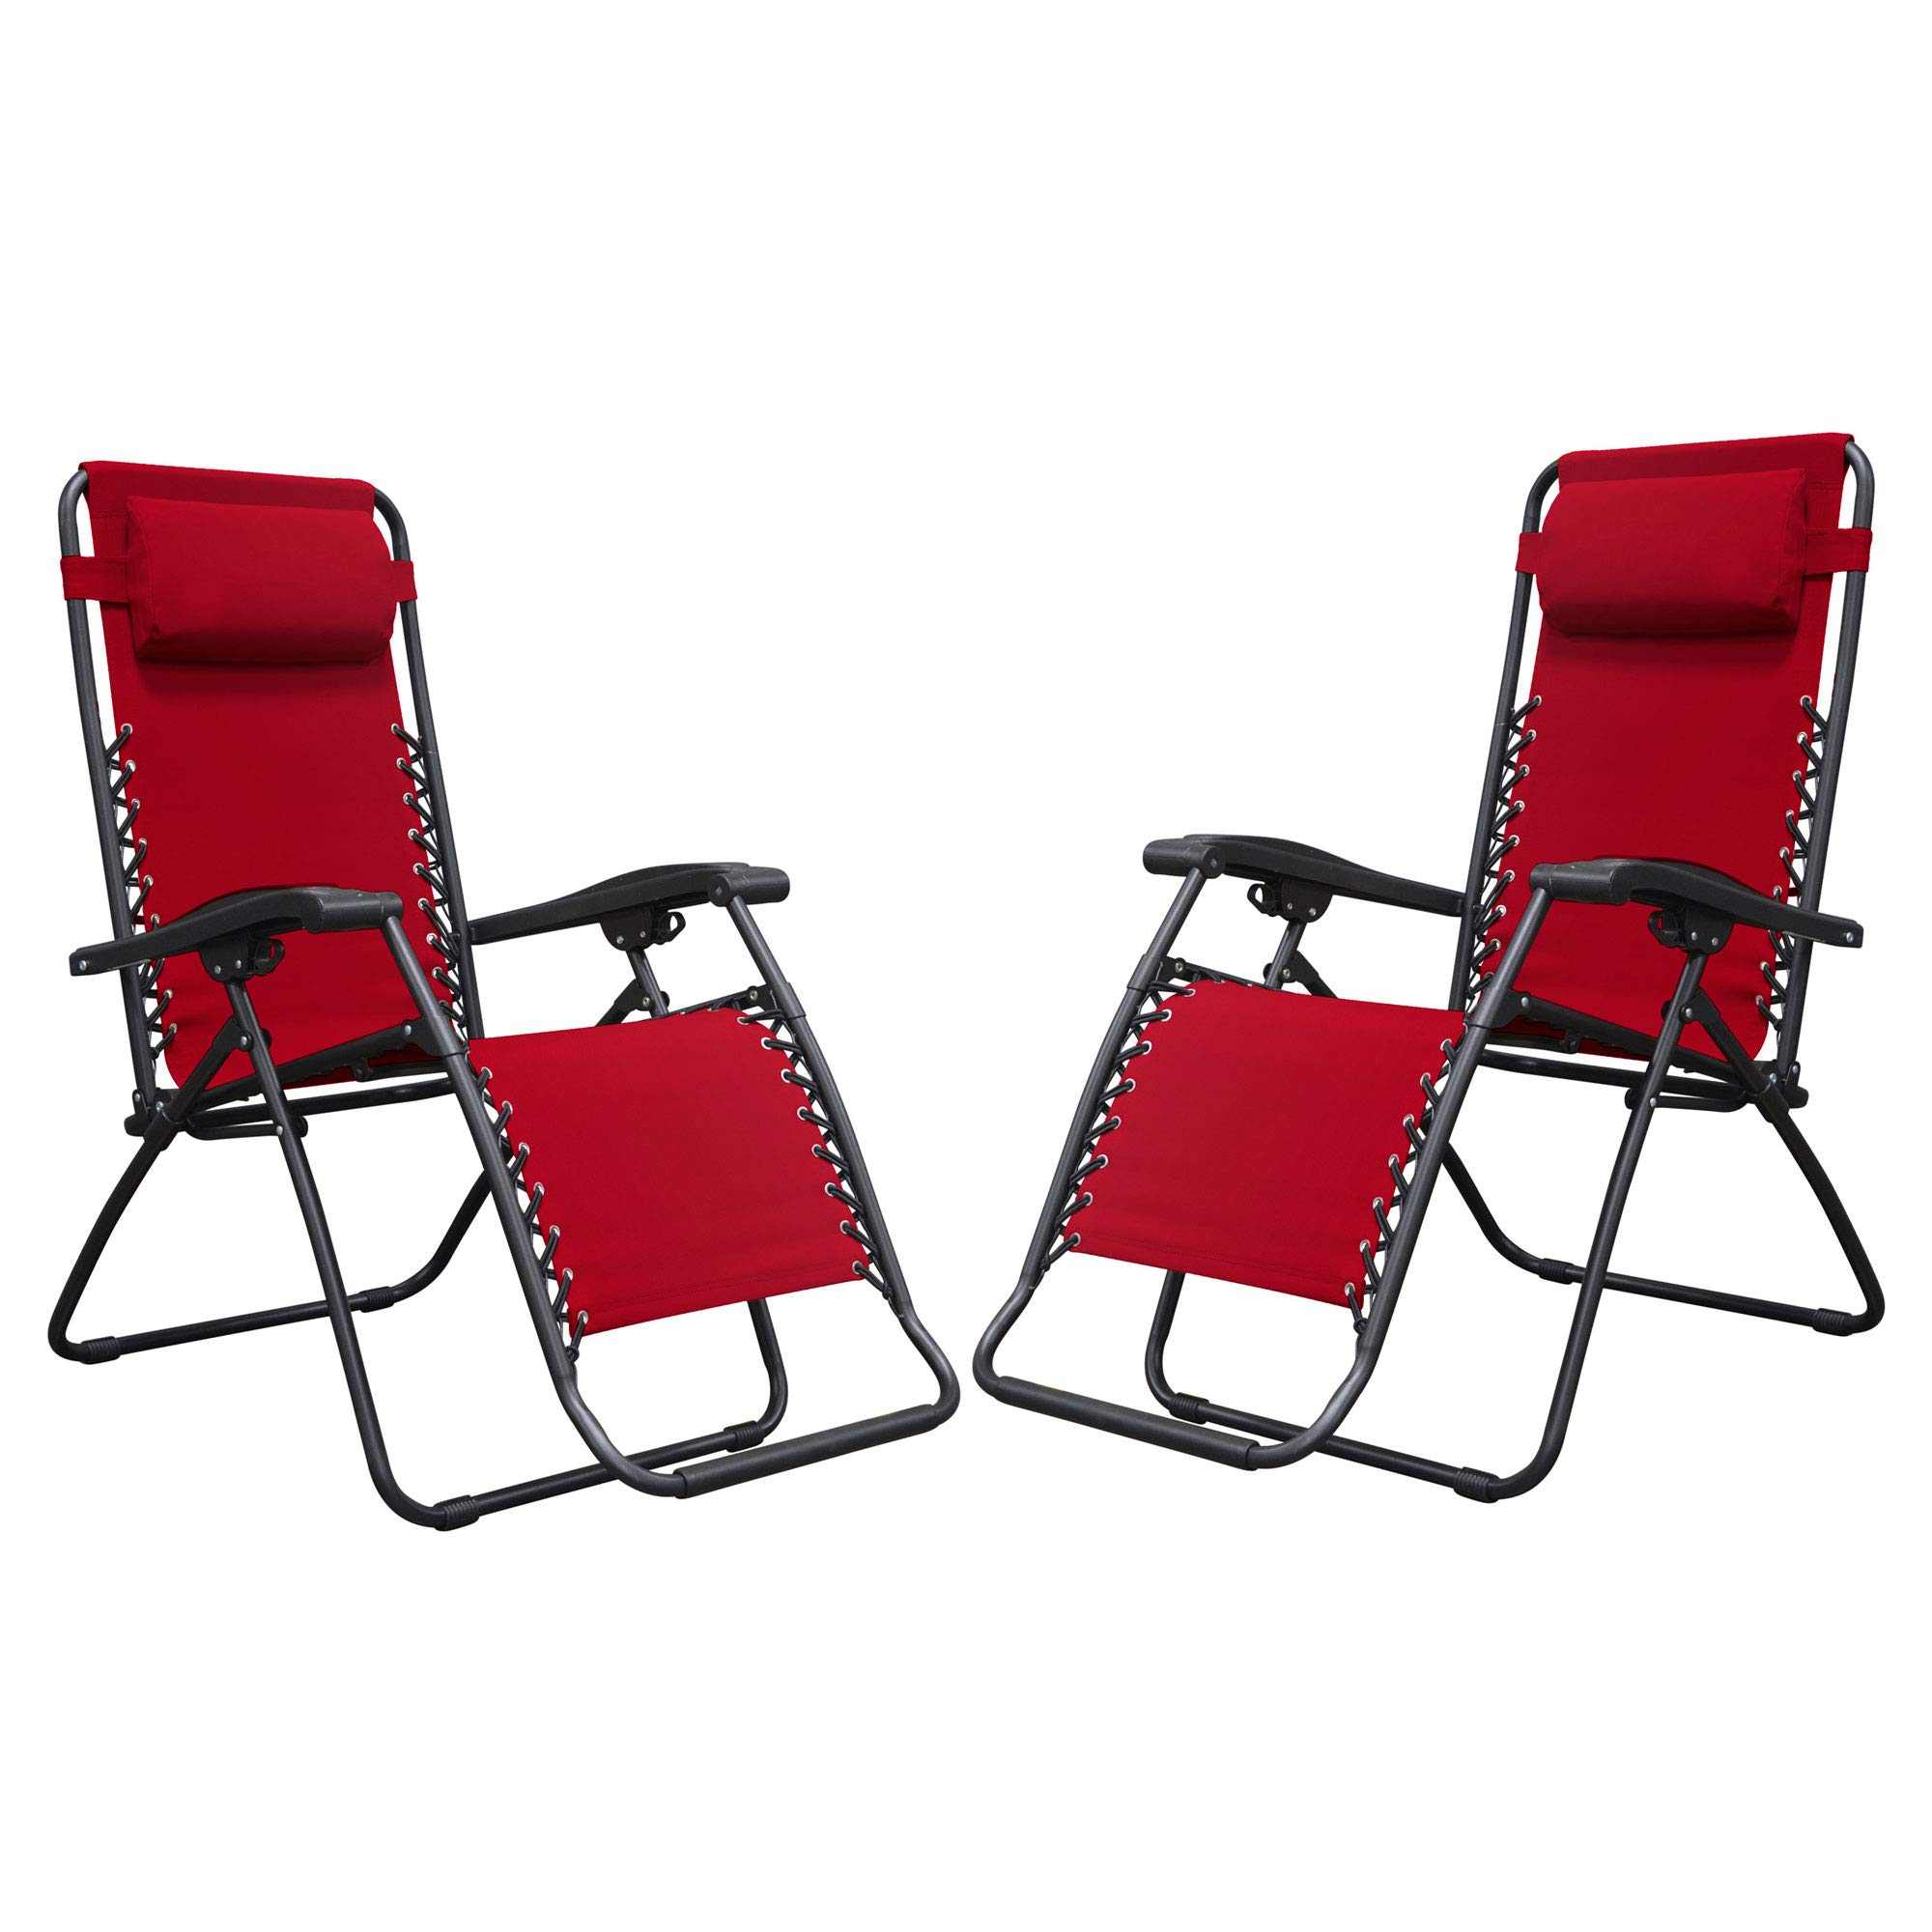 Caravan Canopy Sports Infinity Zero Gravity Steel Frame Patio Deck Chair, Red